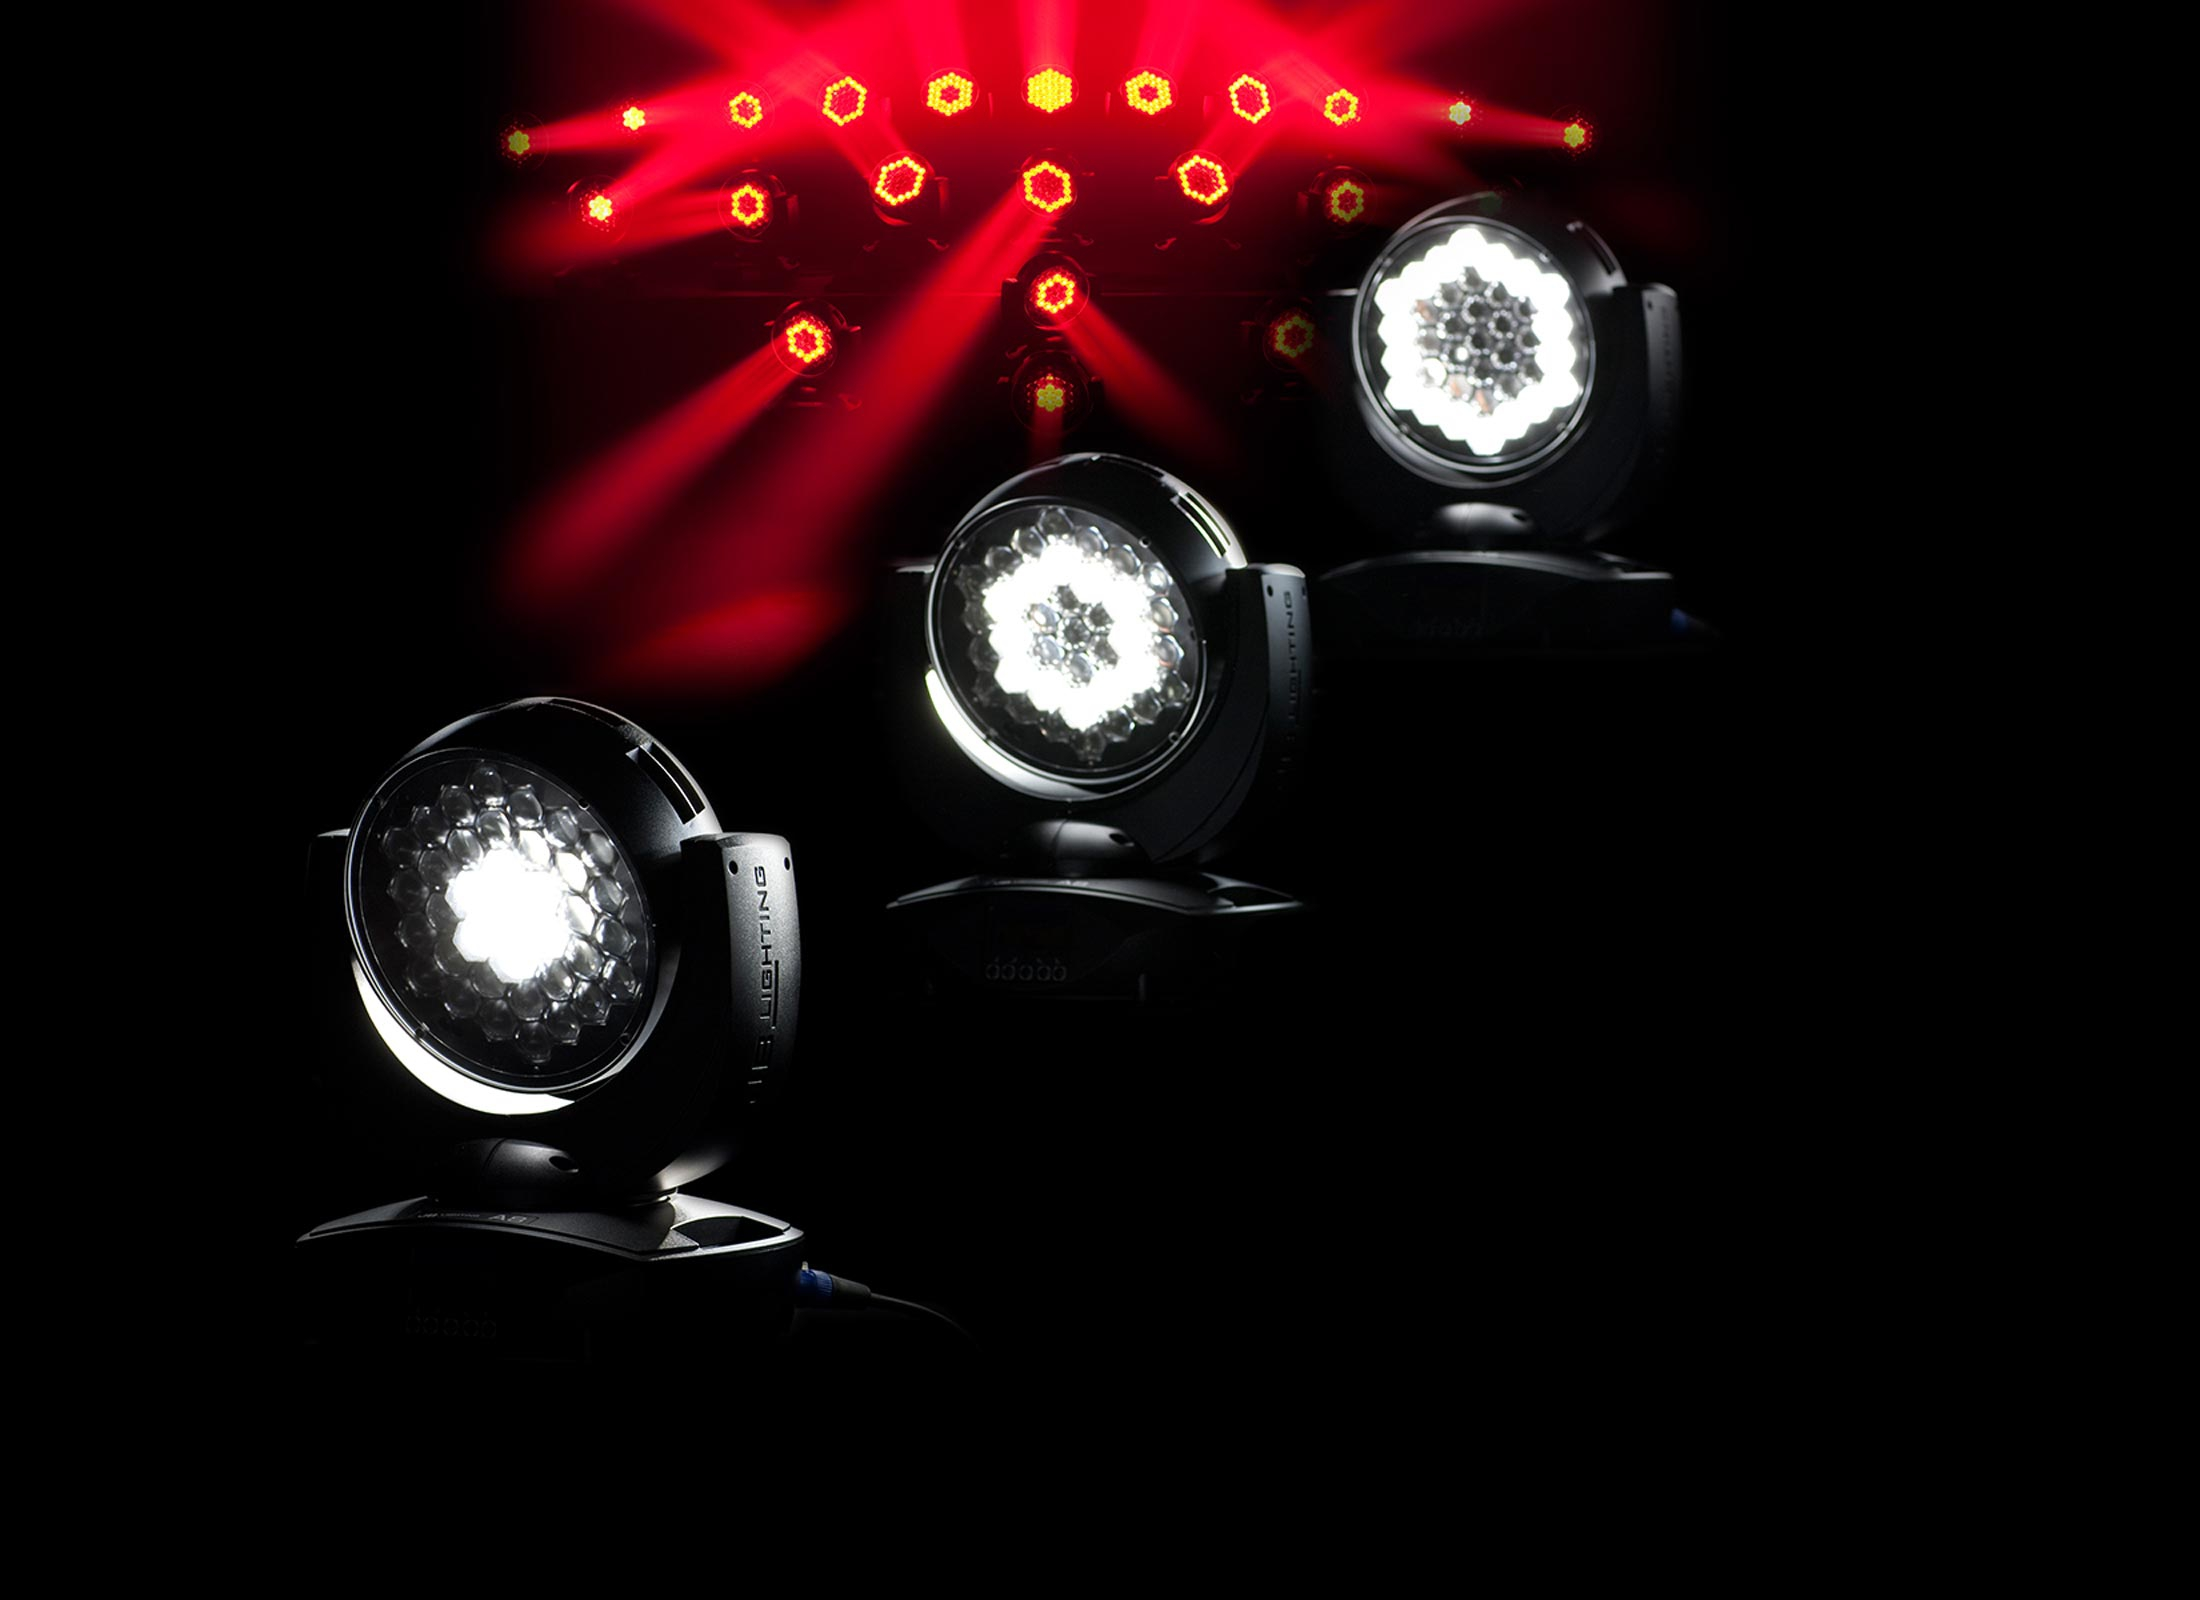 Jb Lighting Wireless Jb Lighting A8 Led Moving Head Wash Online At Low Prices At Huss